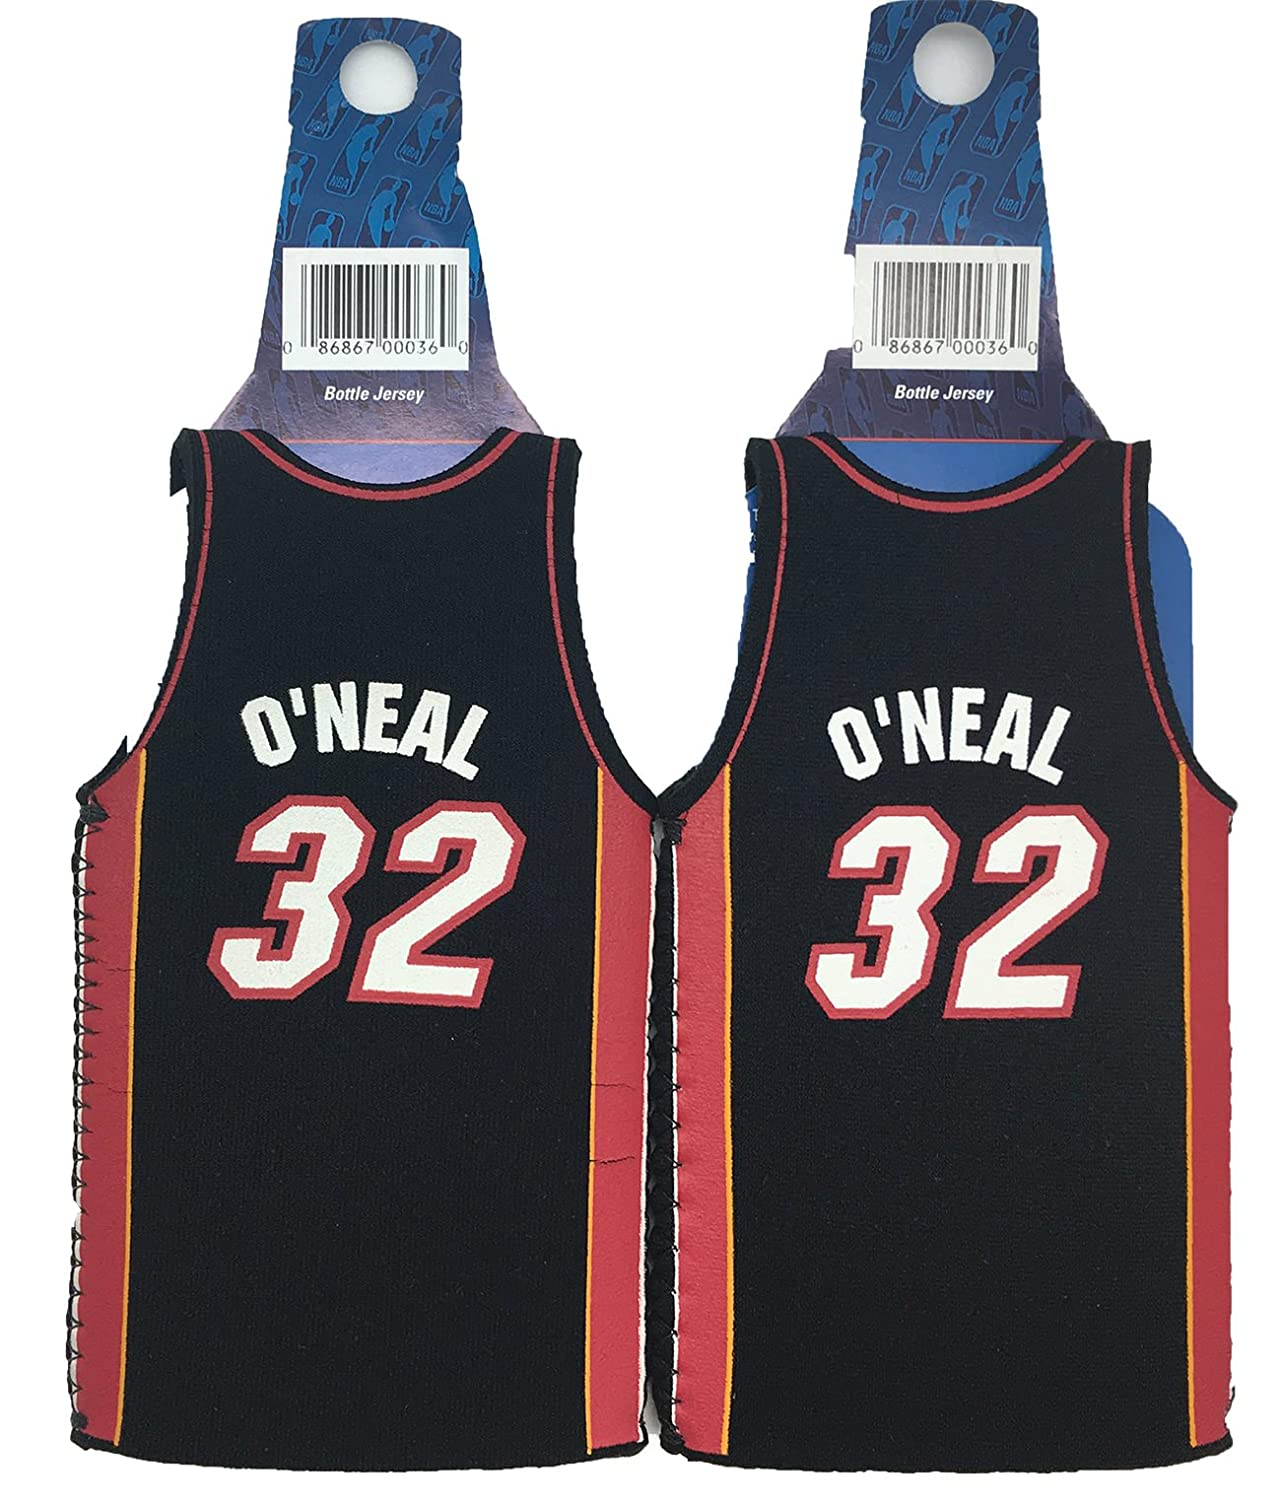 buy online 7a3eb 5f4a1 NBA Shaquille O'Neal #32 Miami Heat Throwback Jersey Bottle ...